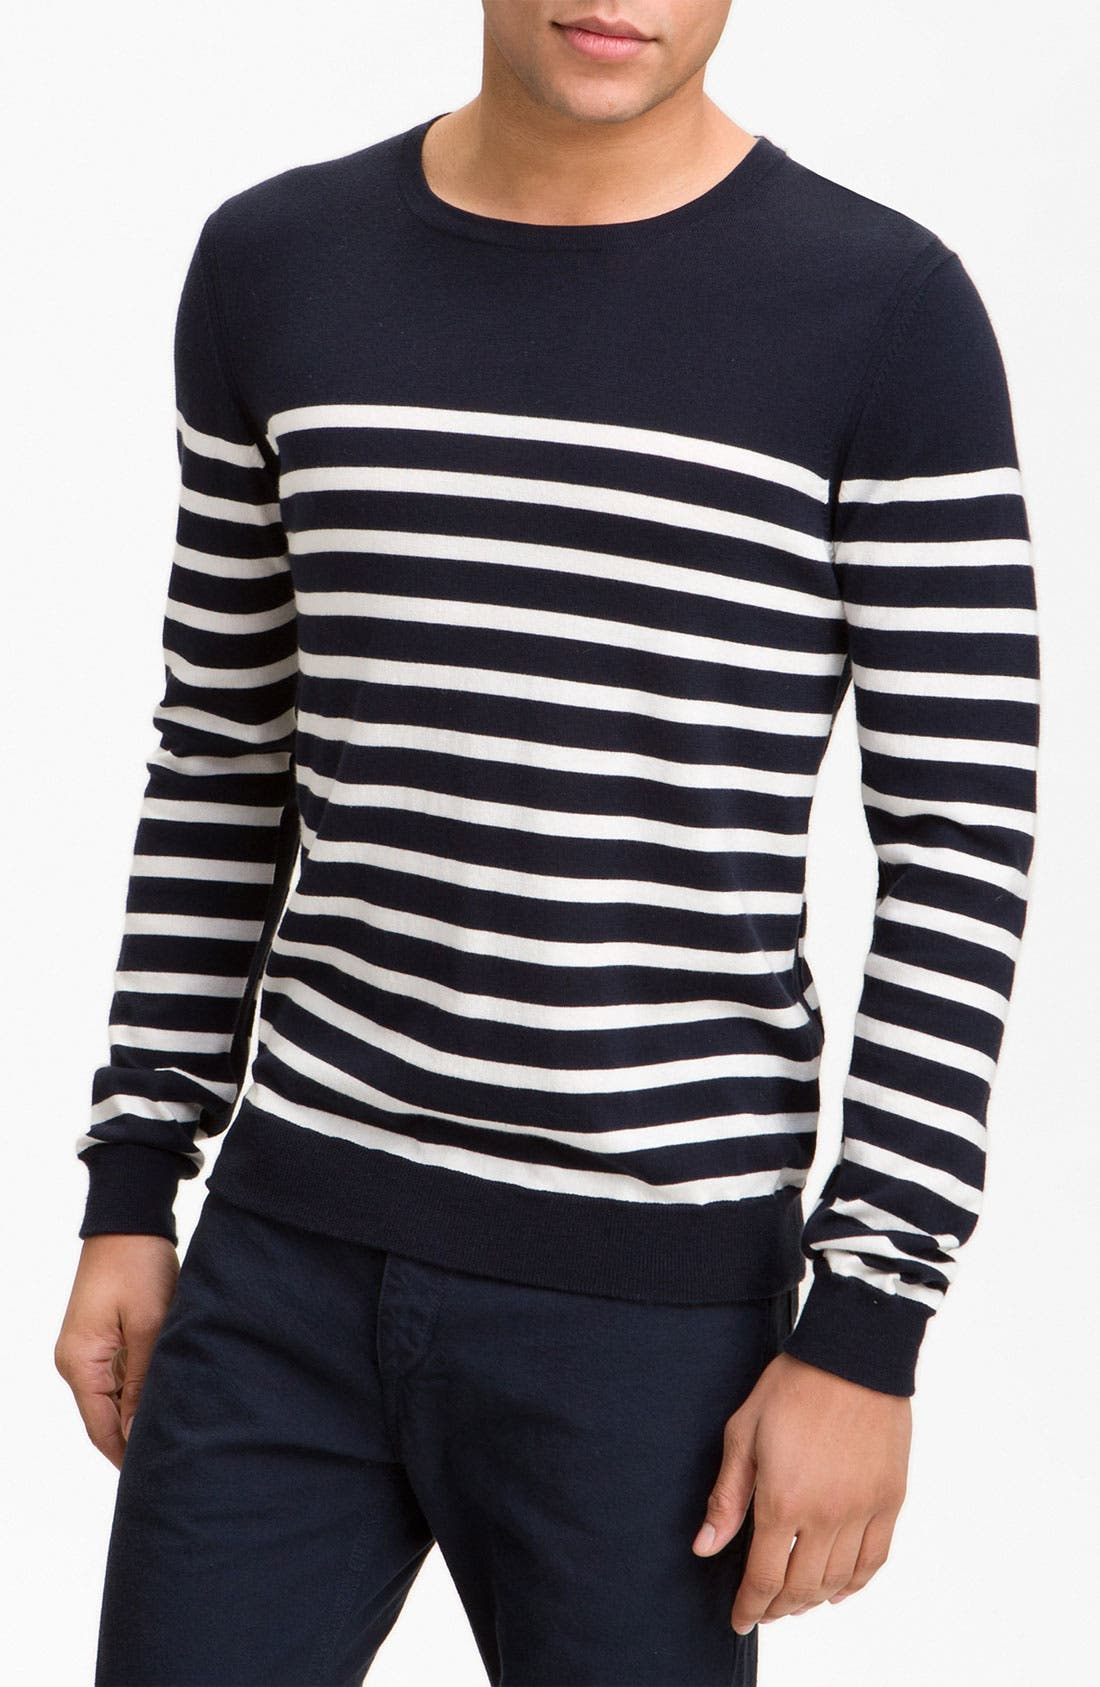 Alternate Image 1 Selected - rag & bone 'Basque' Crewneck Sweater